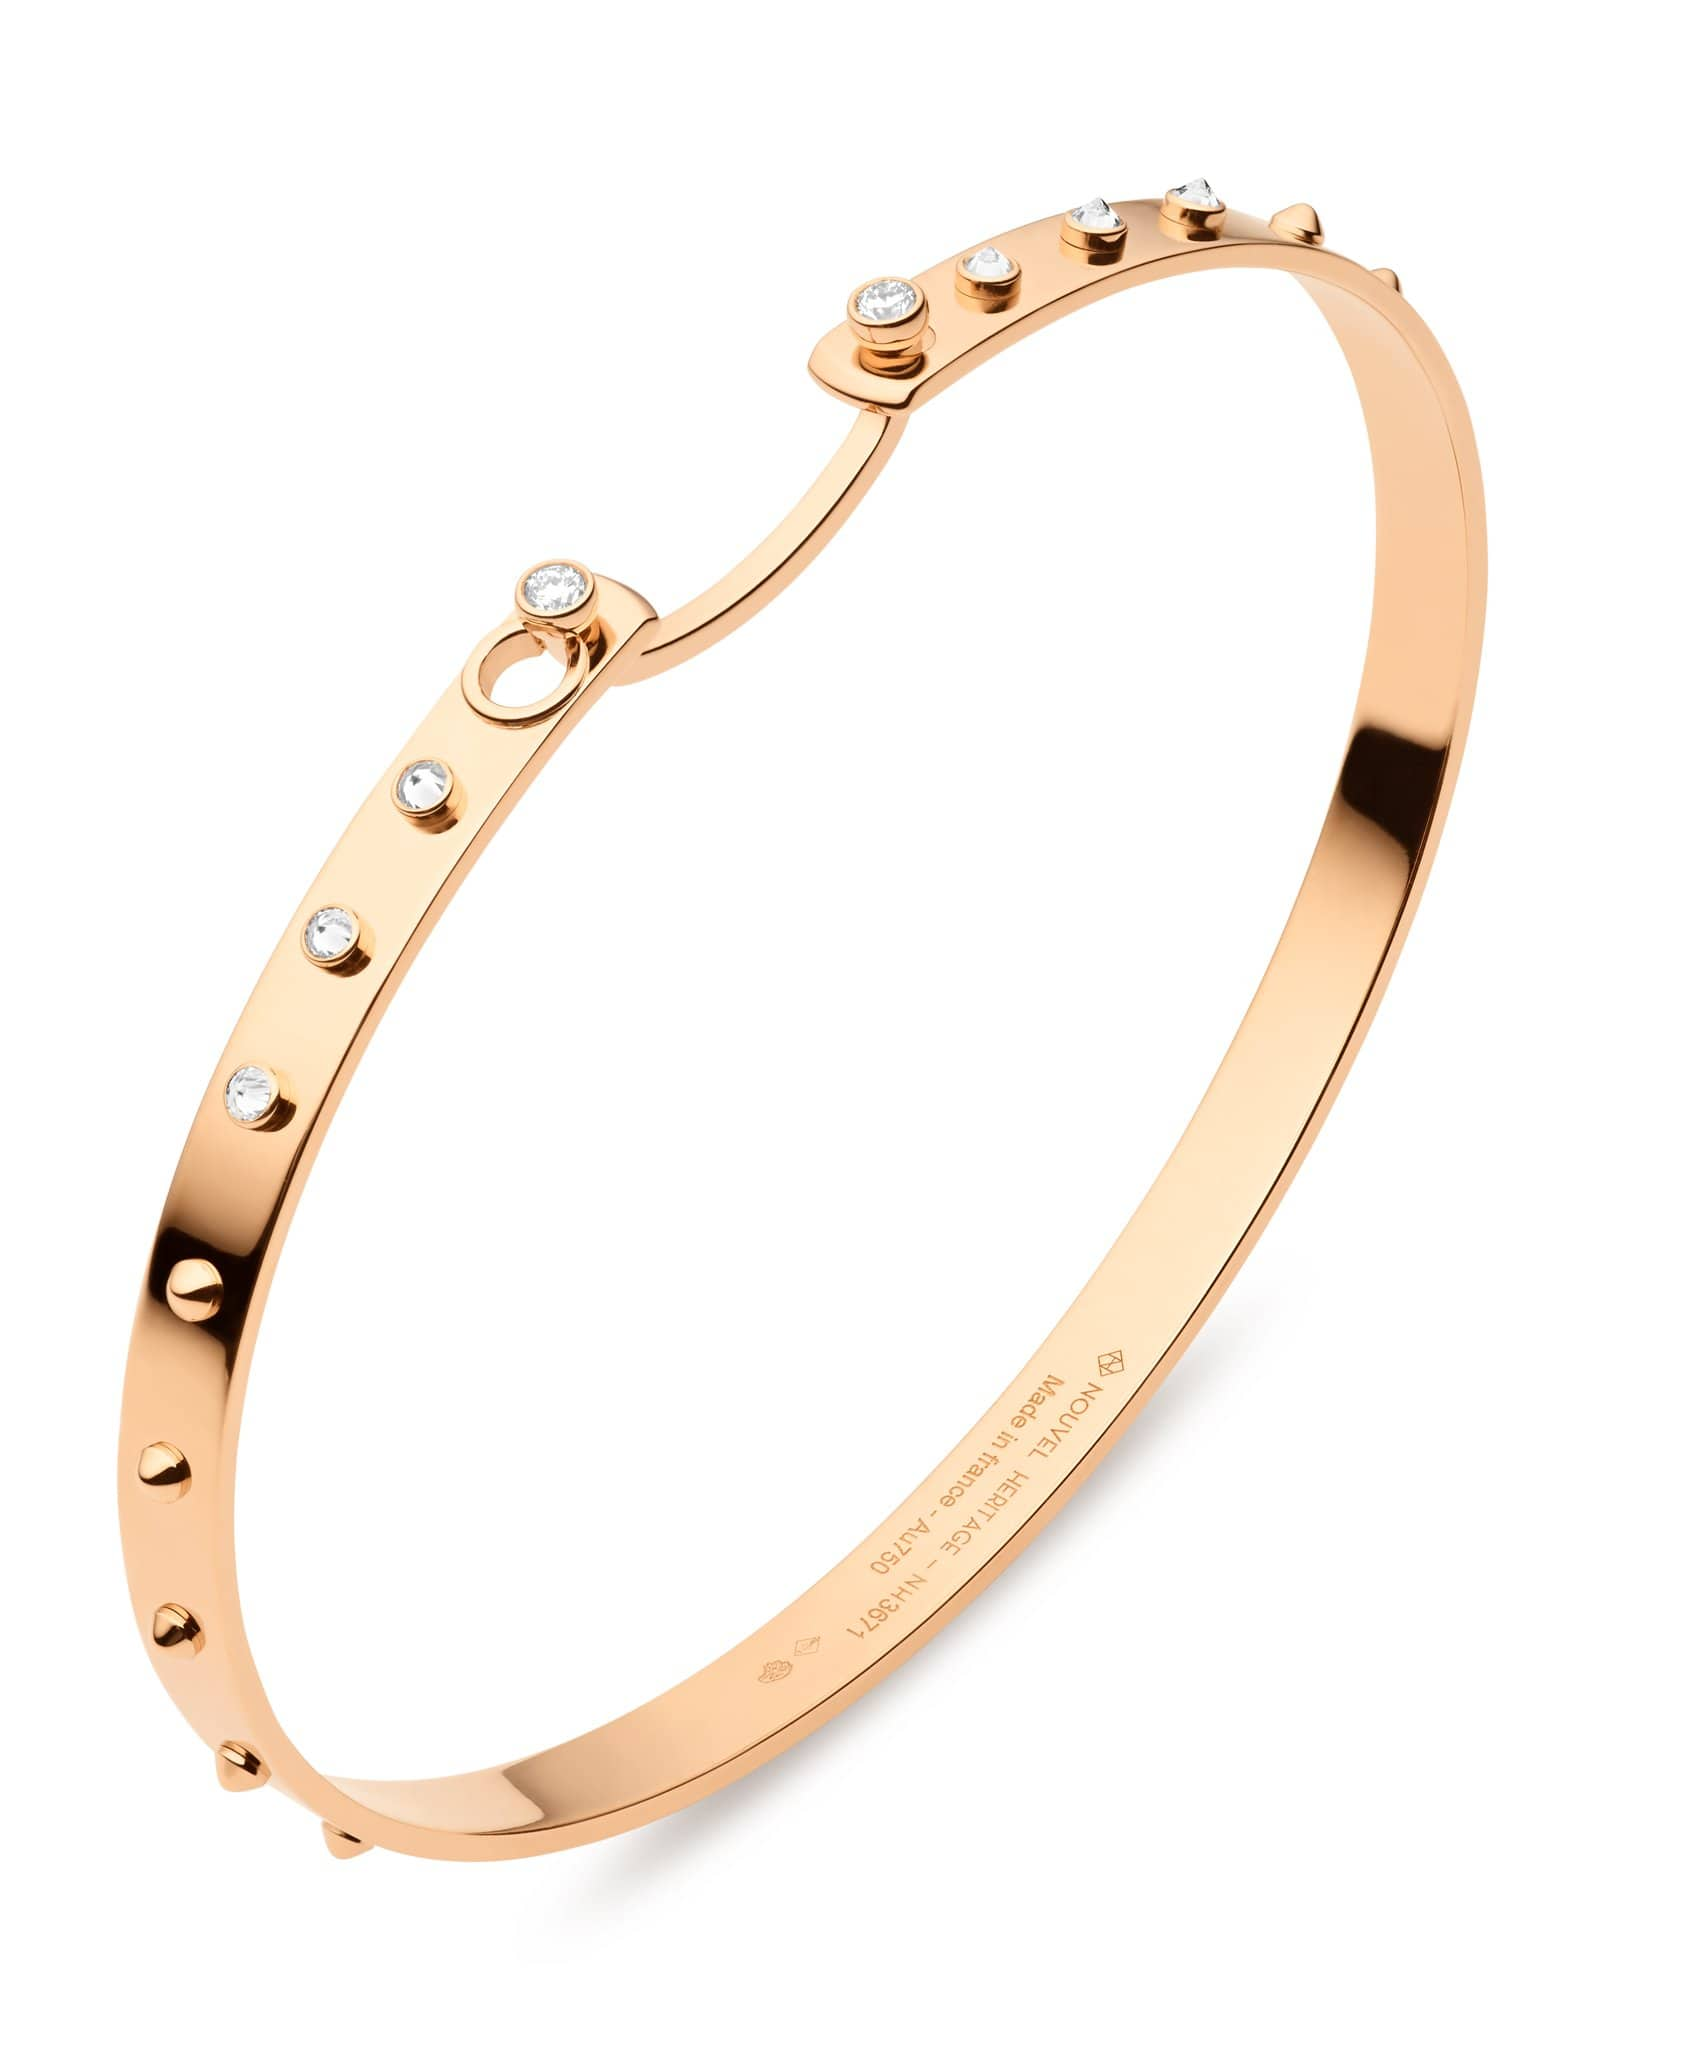 Brunch in NY Mood Bangle: Discover Luxury Fine Jewelry | Nouvel Heritage || Rose Gold